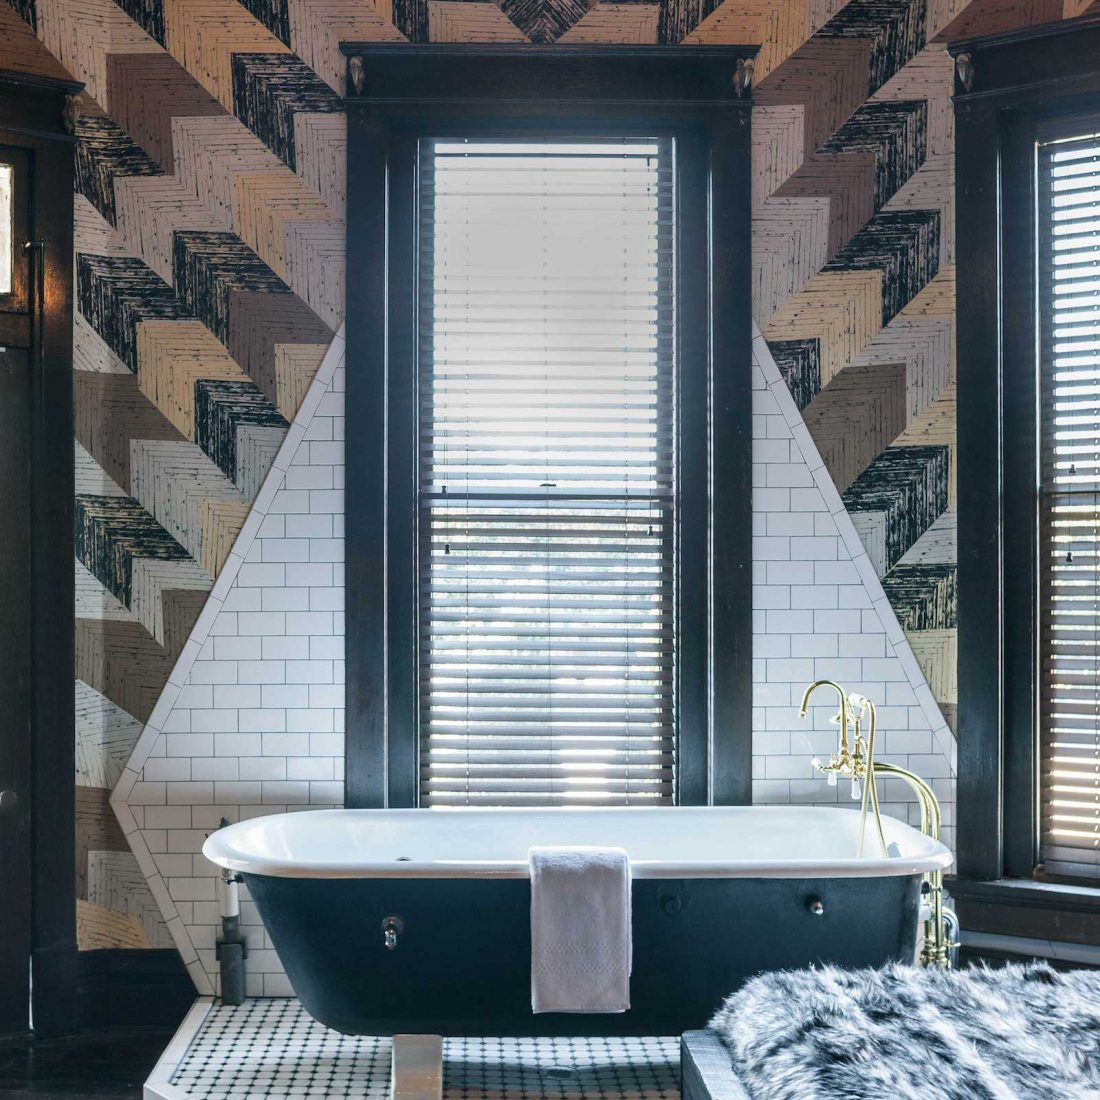 View of a bathtub inside The Midnight Rider accommodation inside Urban Cowboy Nashville. The tub is near the king sized bed, placed atop a tiled area shaped like a diamond along the wall. This octagonal room is set with three tall windows.